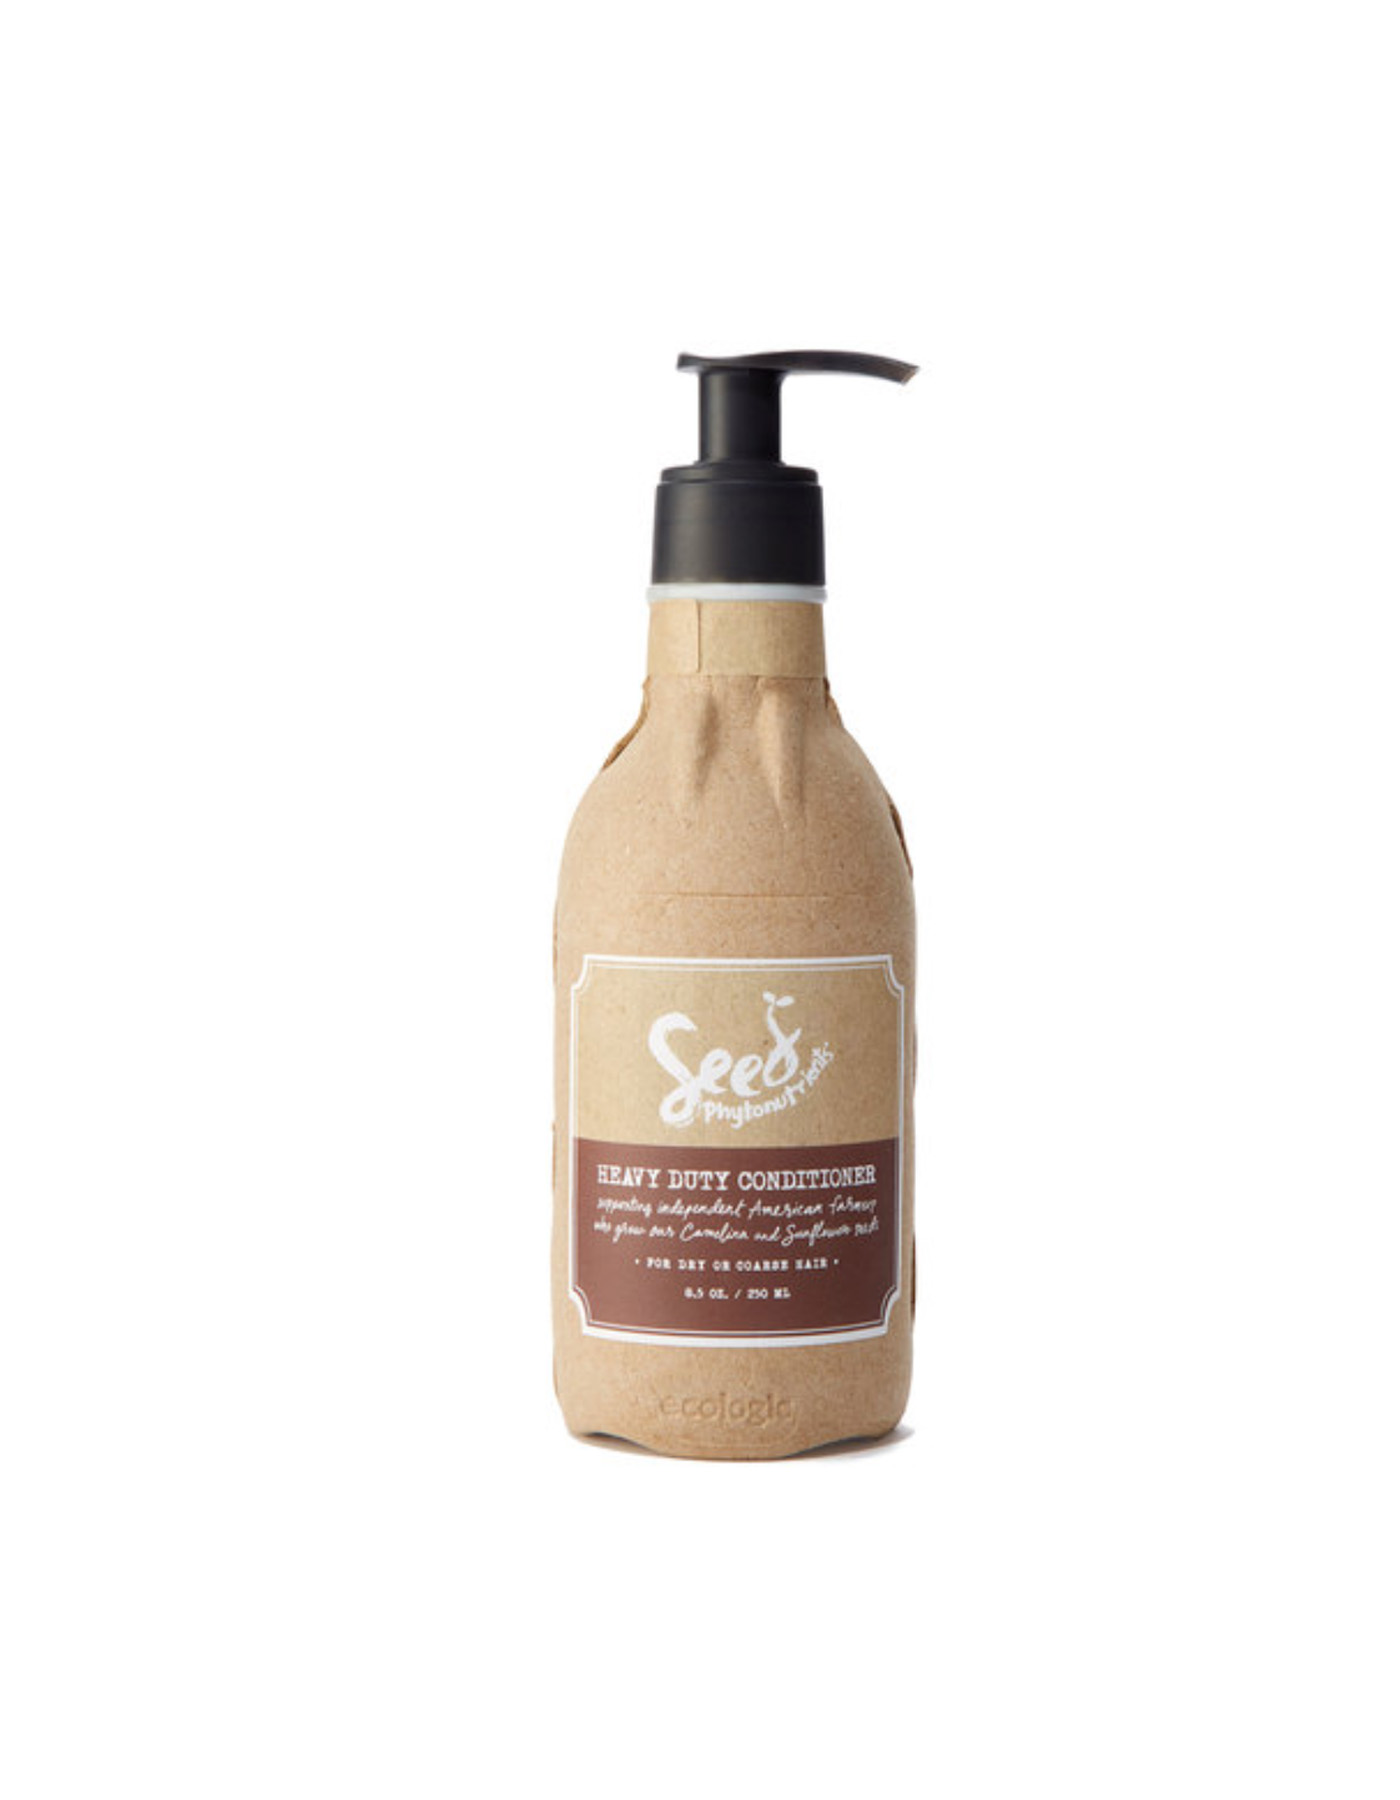 SEED Heavy duty conditioner